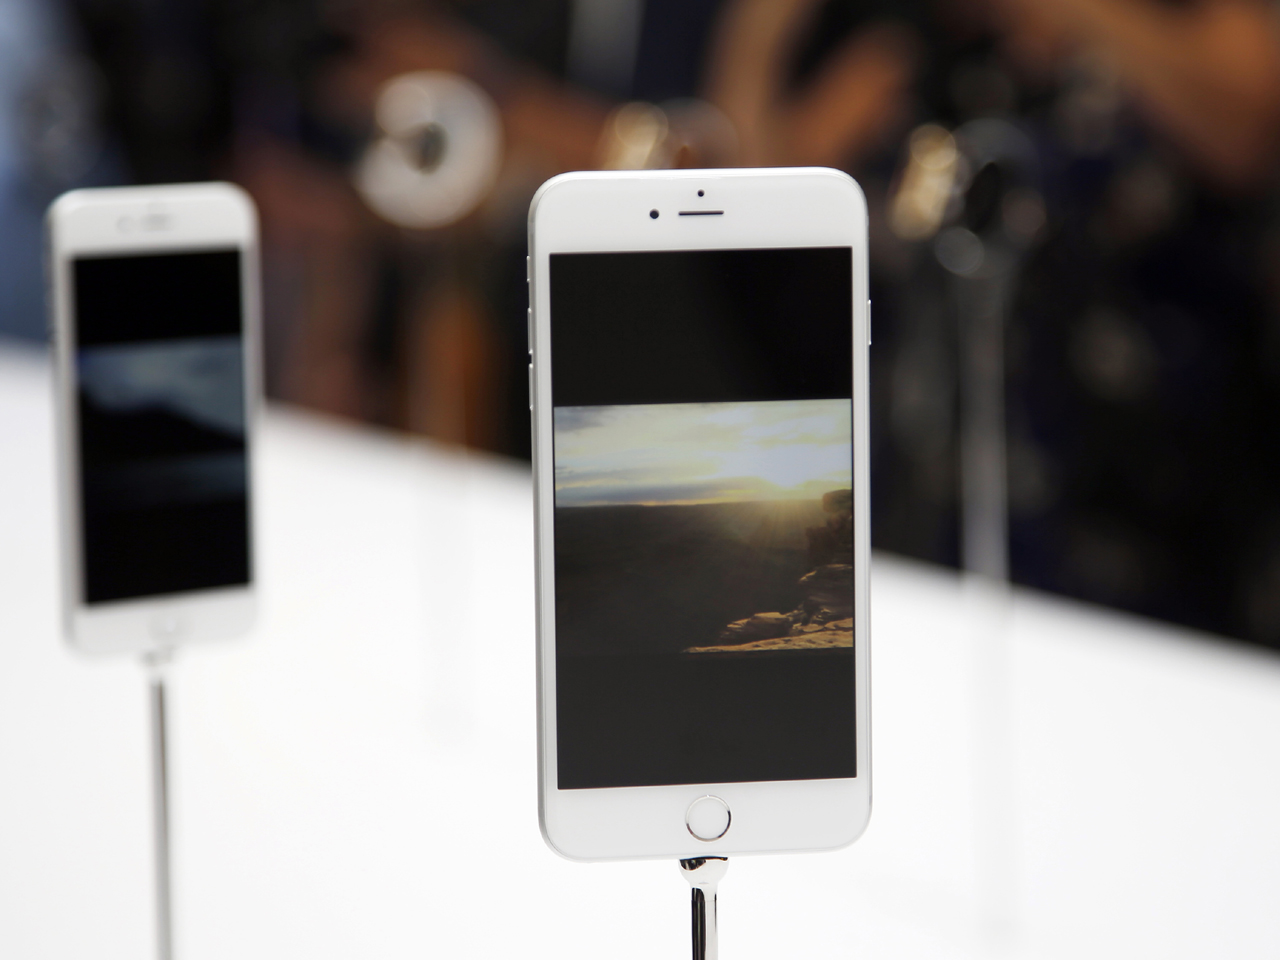 iPhone 6 Plus  Is it too big for women  - CBS News b8d0e97460